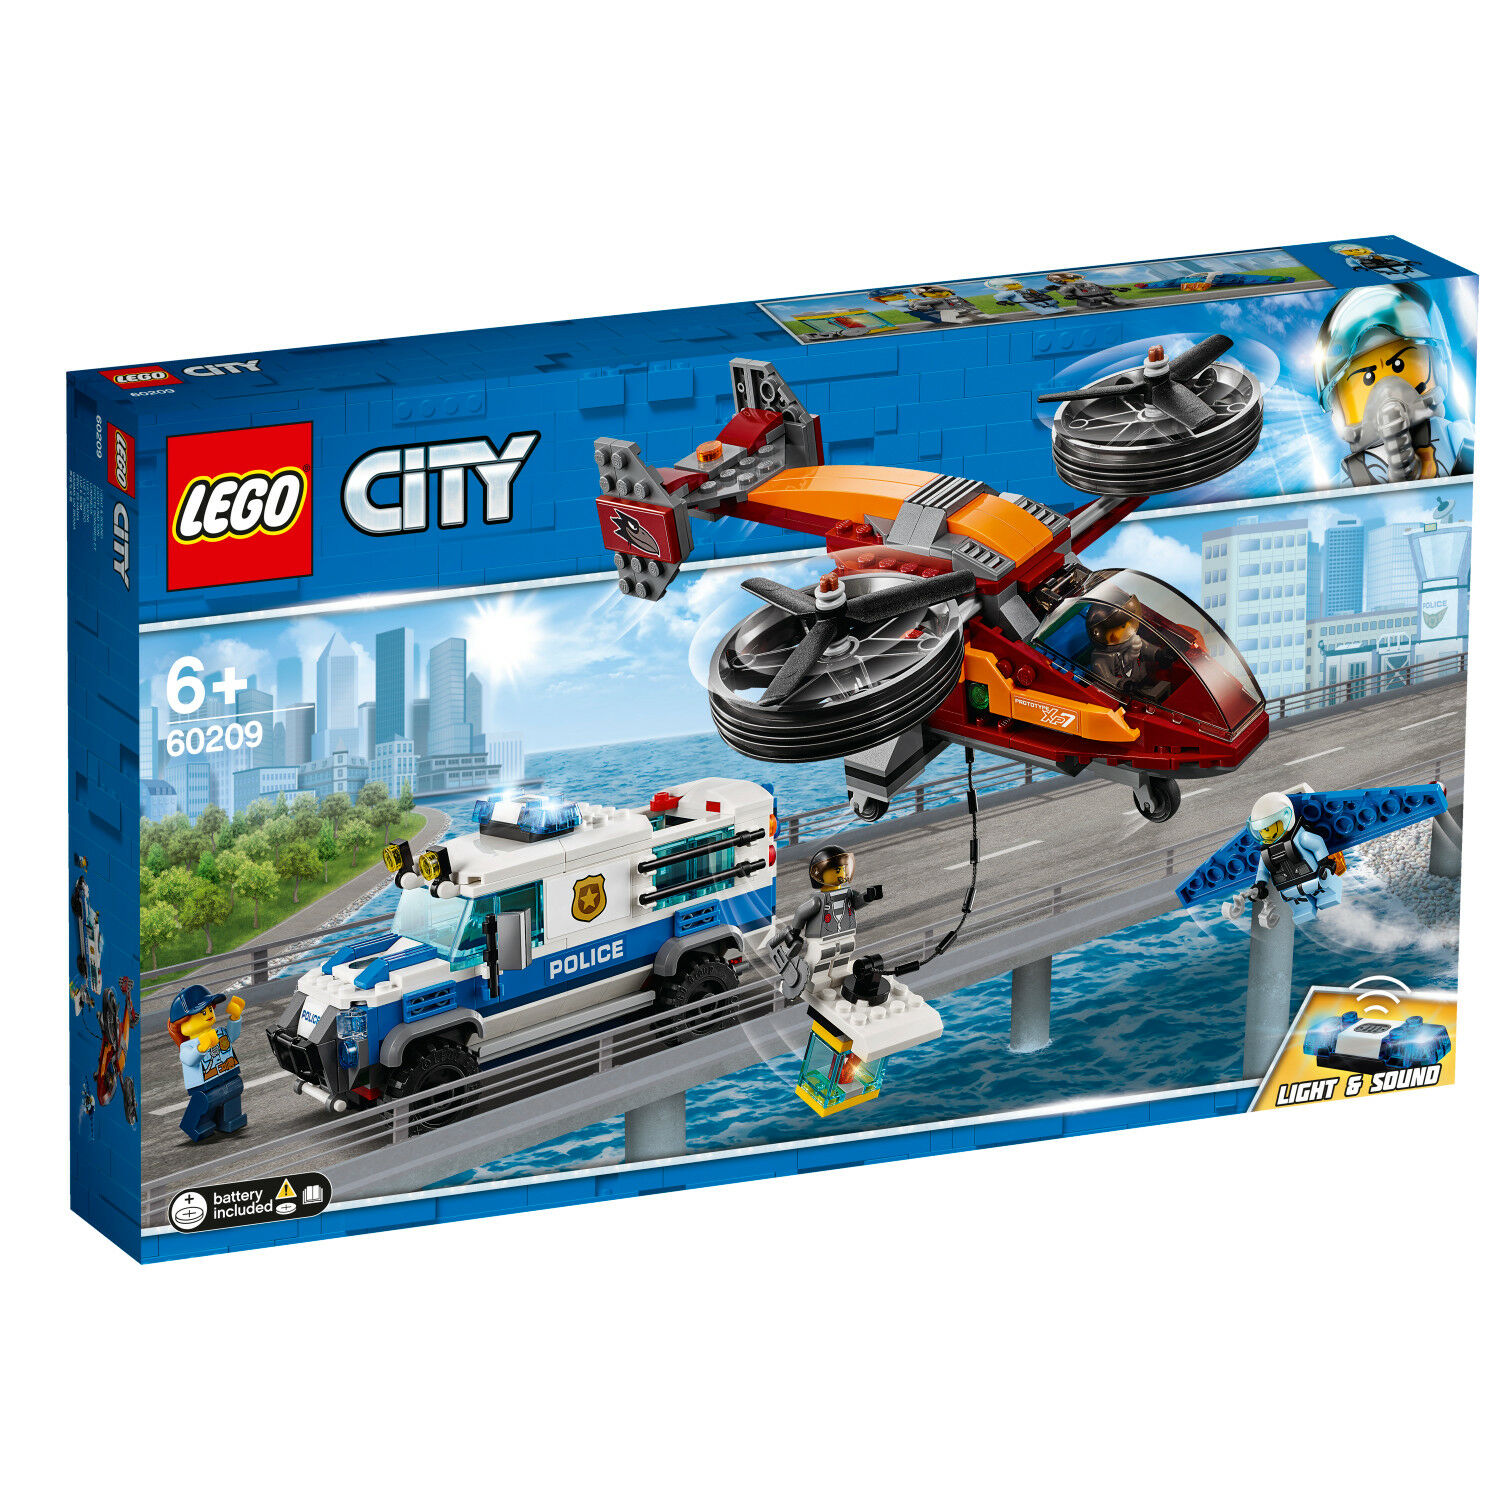 LEGO CITY POLICE 60209 diamants Sky police Diamond s'appelle n1 19